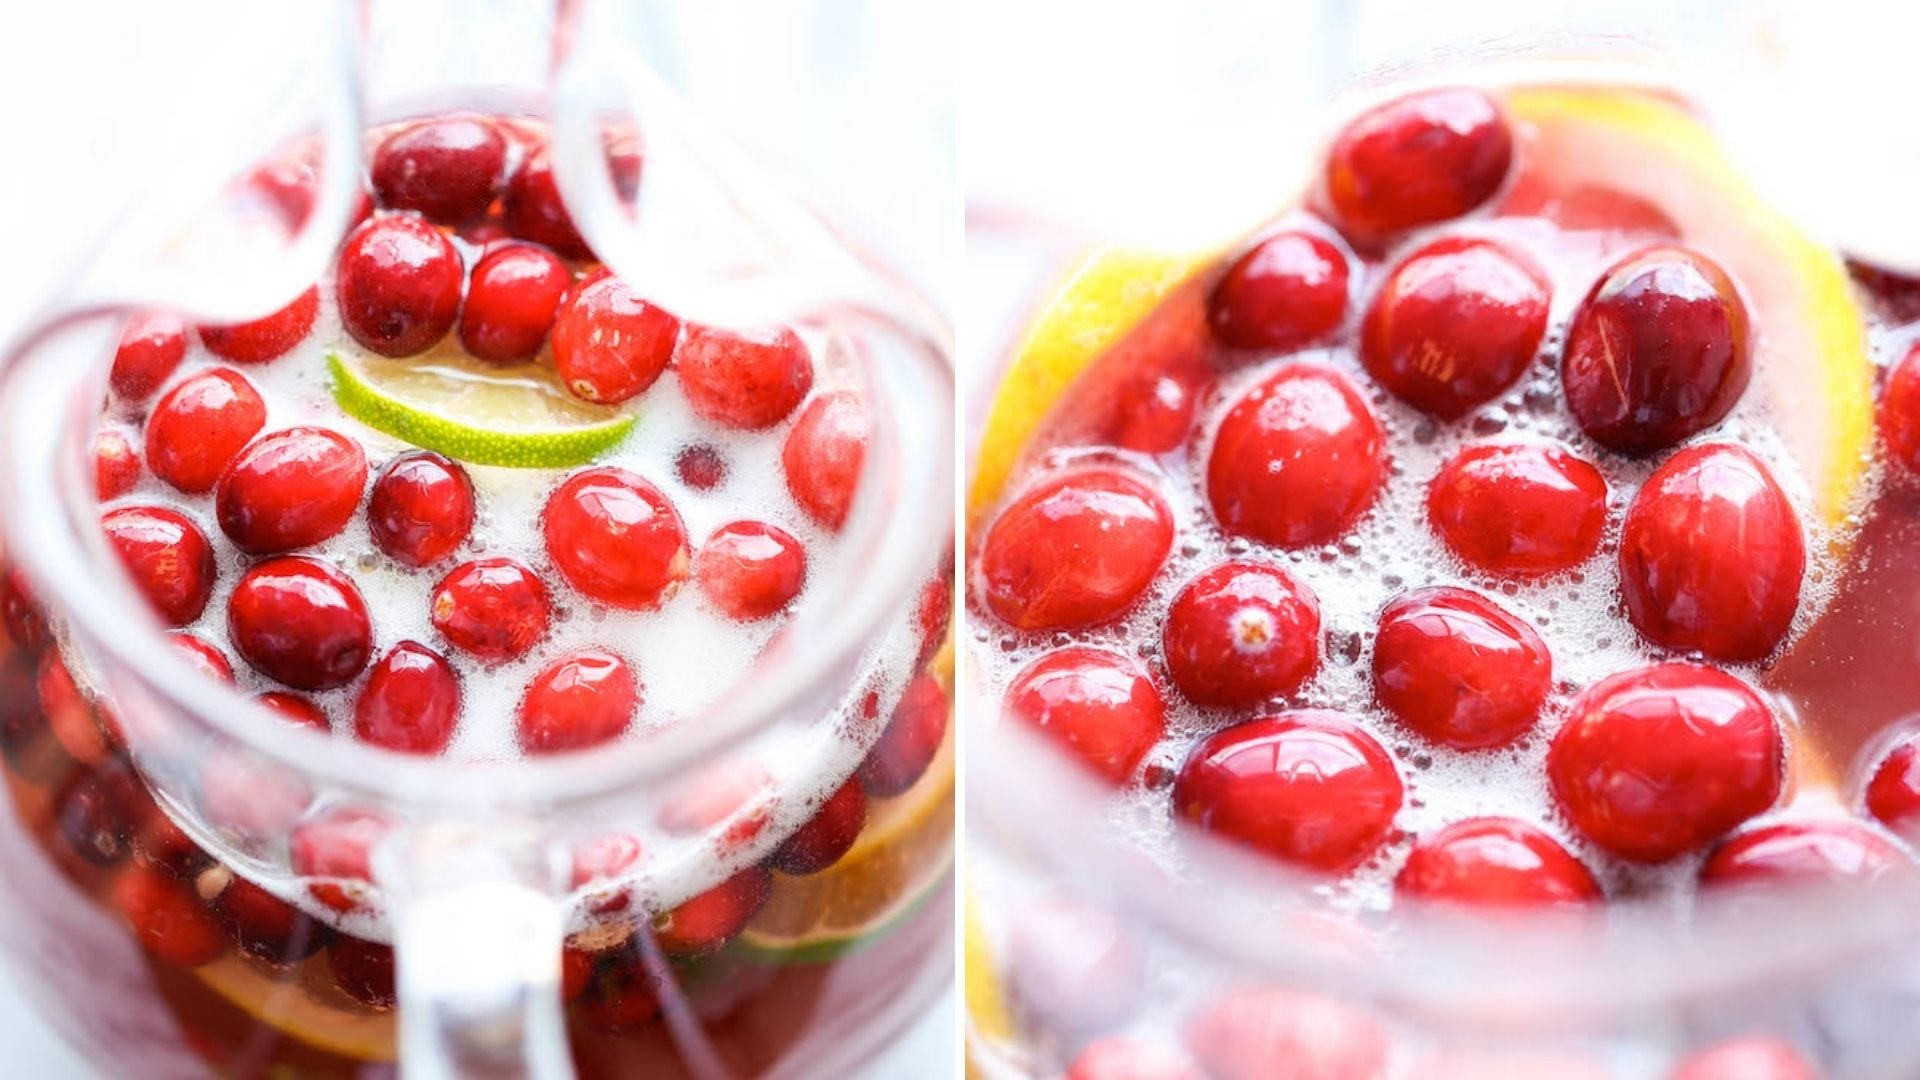 A pitcher full of a sparkling drink with fresh cranberries floating on top